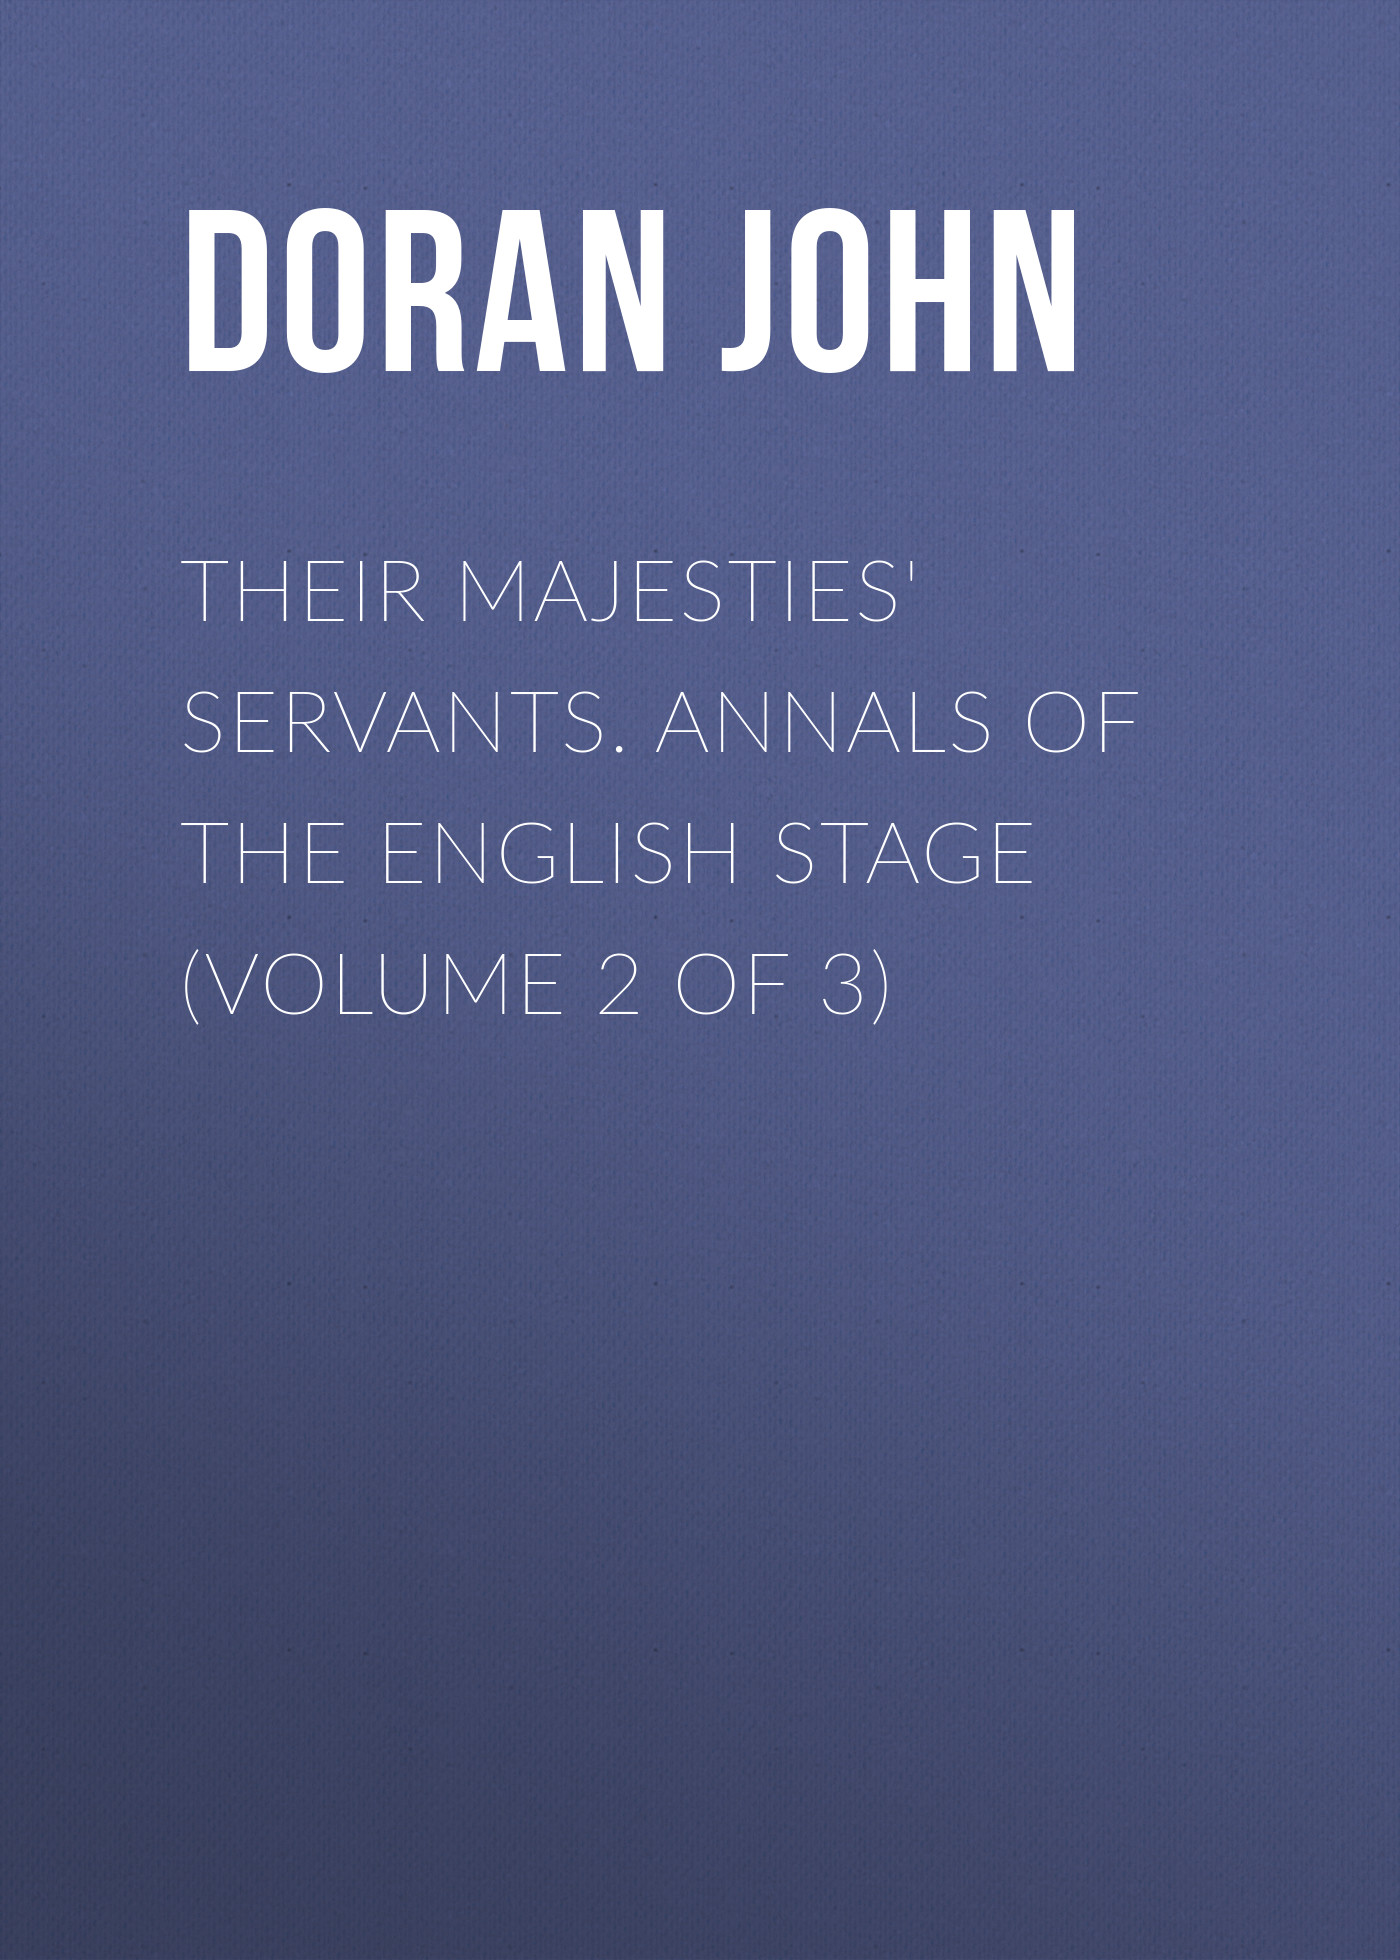 Doran John Their Majesties' Servants. Annals of the English Stage (Volume 2 of 3)